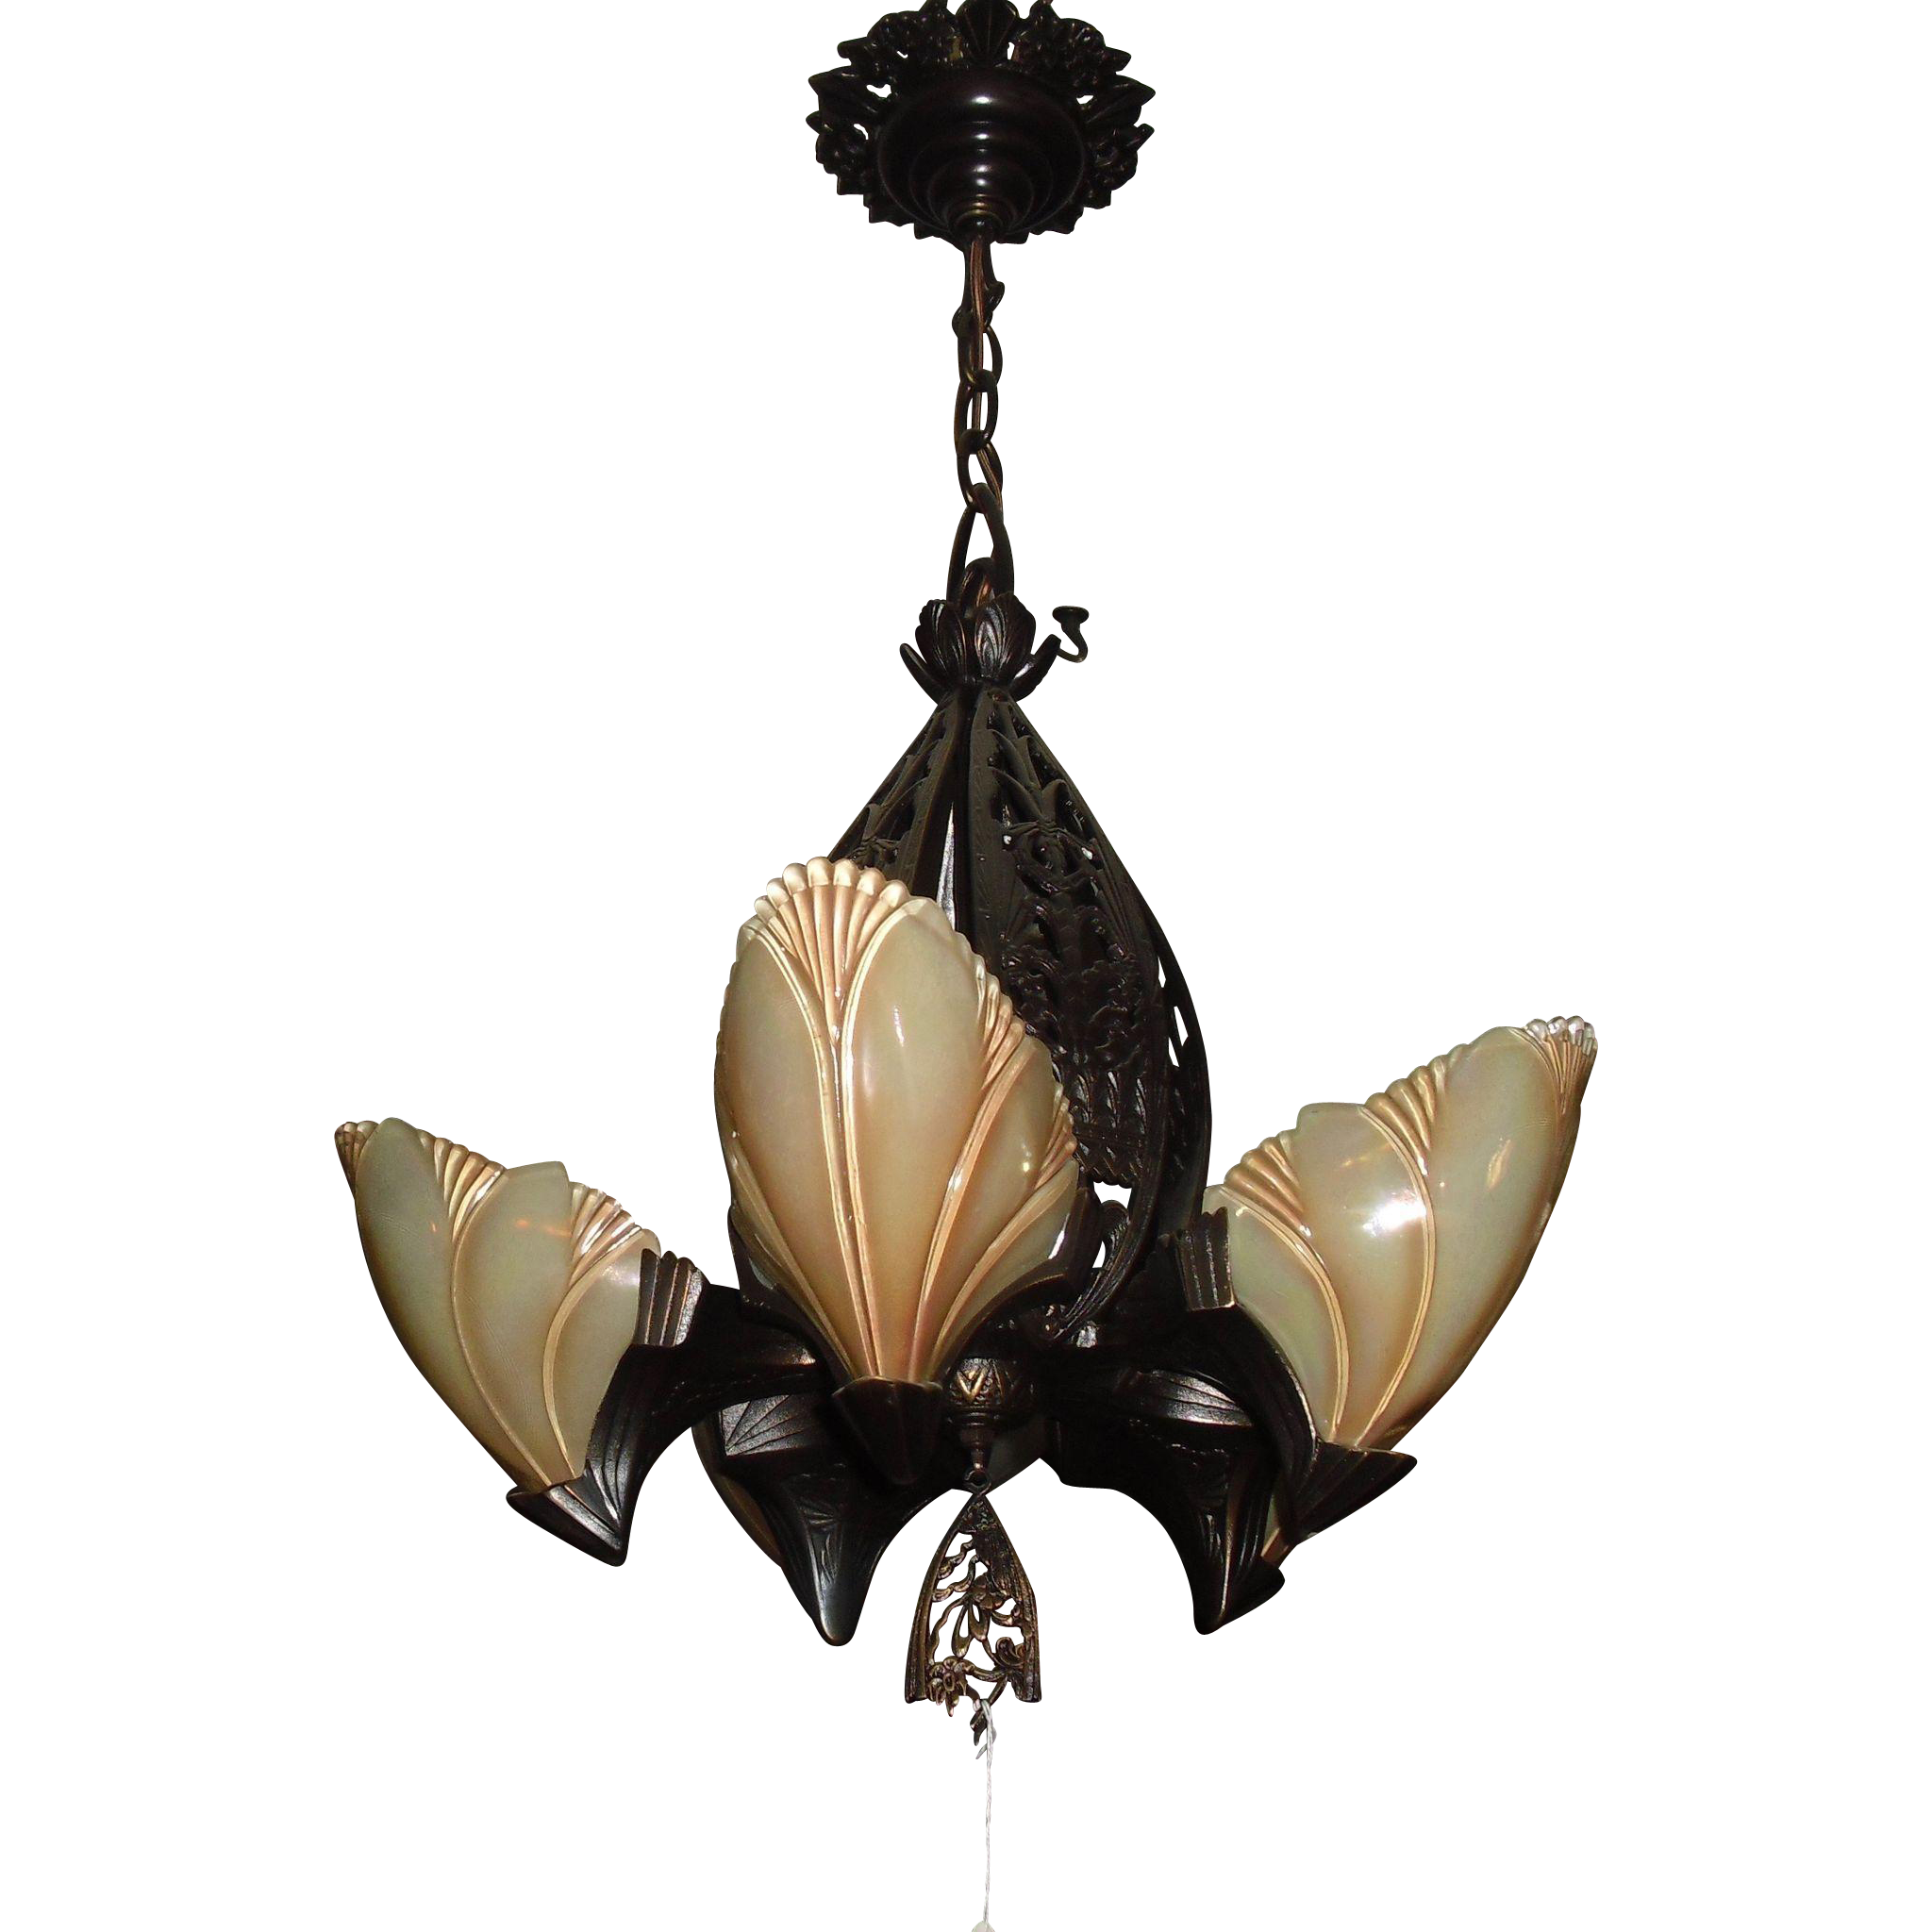 Midwest lighting cast bronze art deco slip shade chandelier from midwest lighting cast bronze art deco slip shade chandelier arubaitofo Image collections